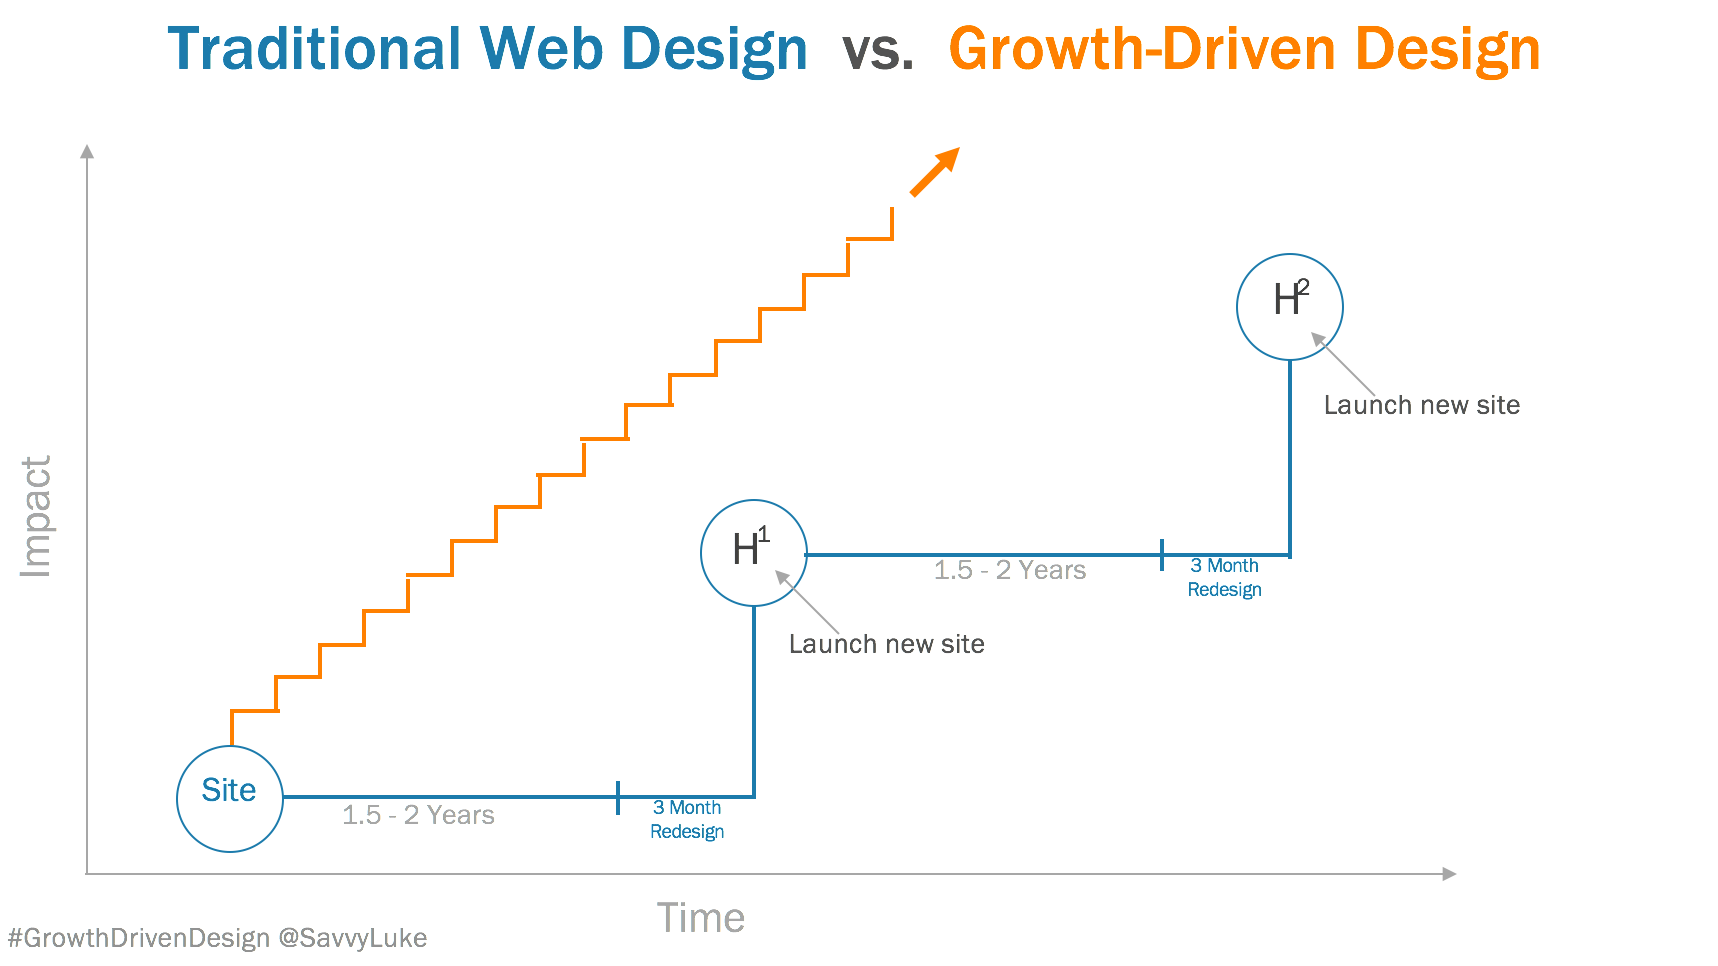 Traditional Design vs GDD